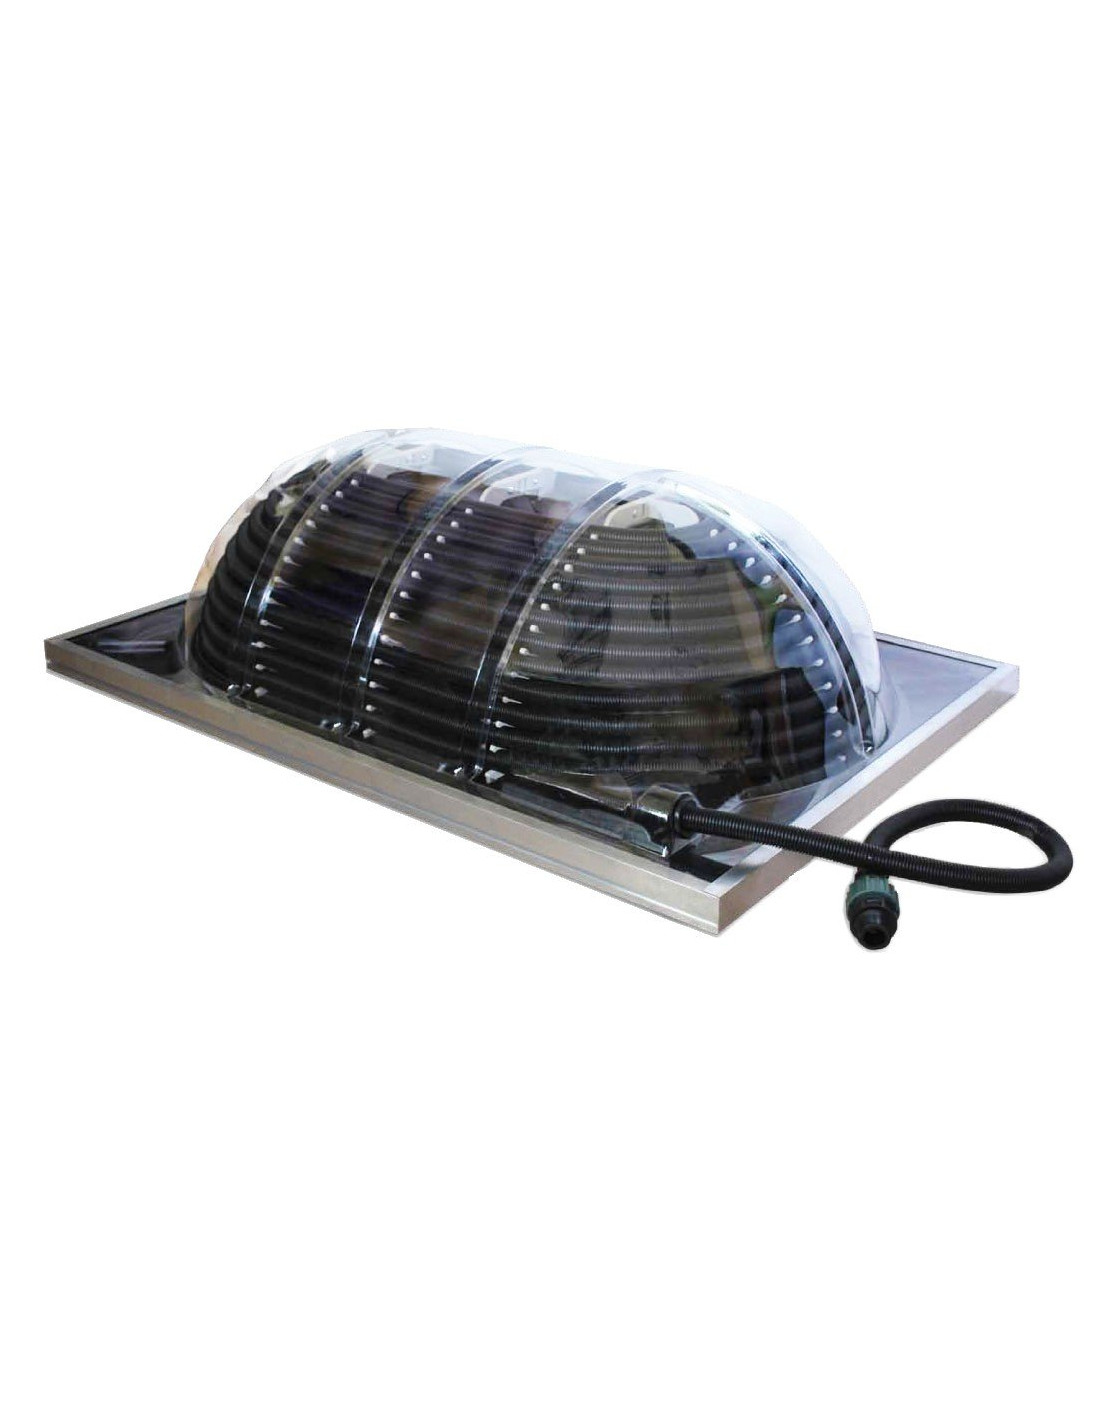 Dome solaire piscine hors sol 20 m3 for Chauffage solaire piscine 6m